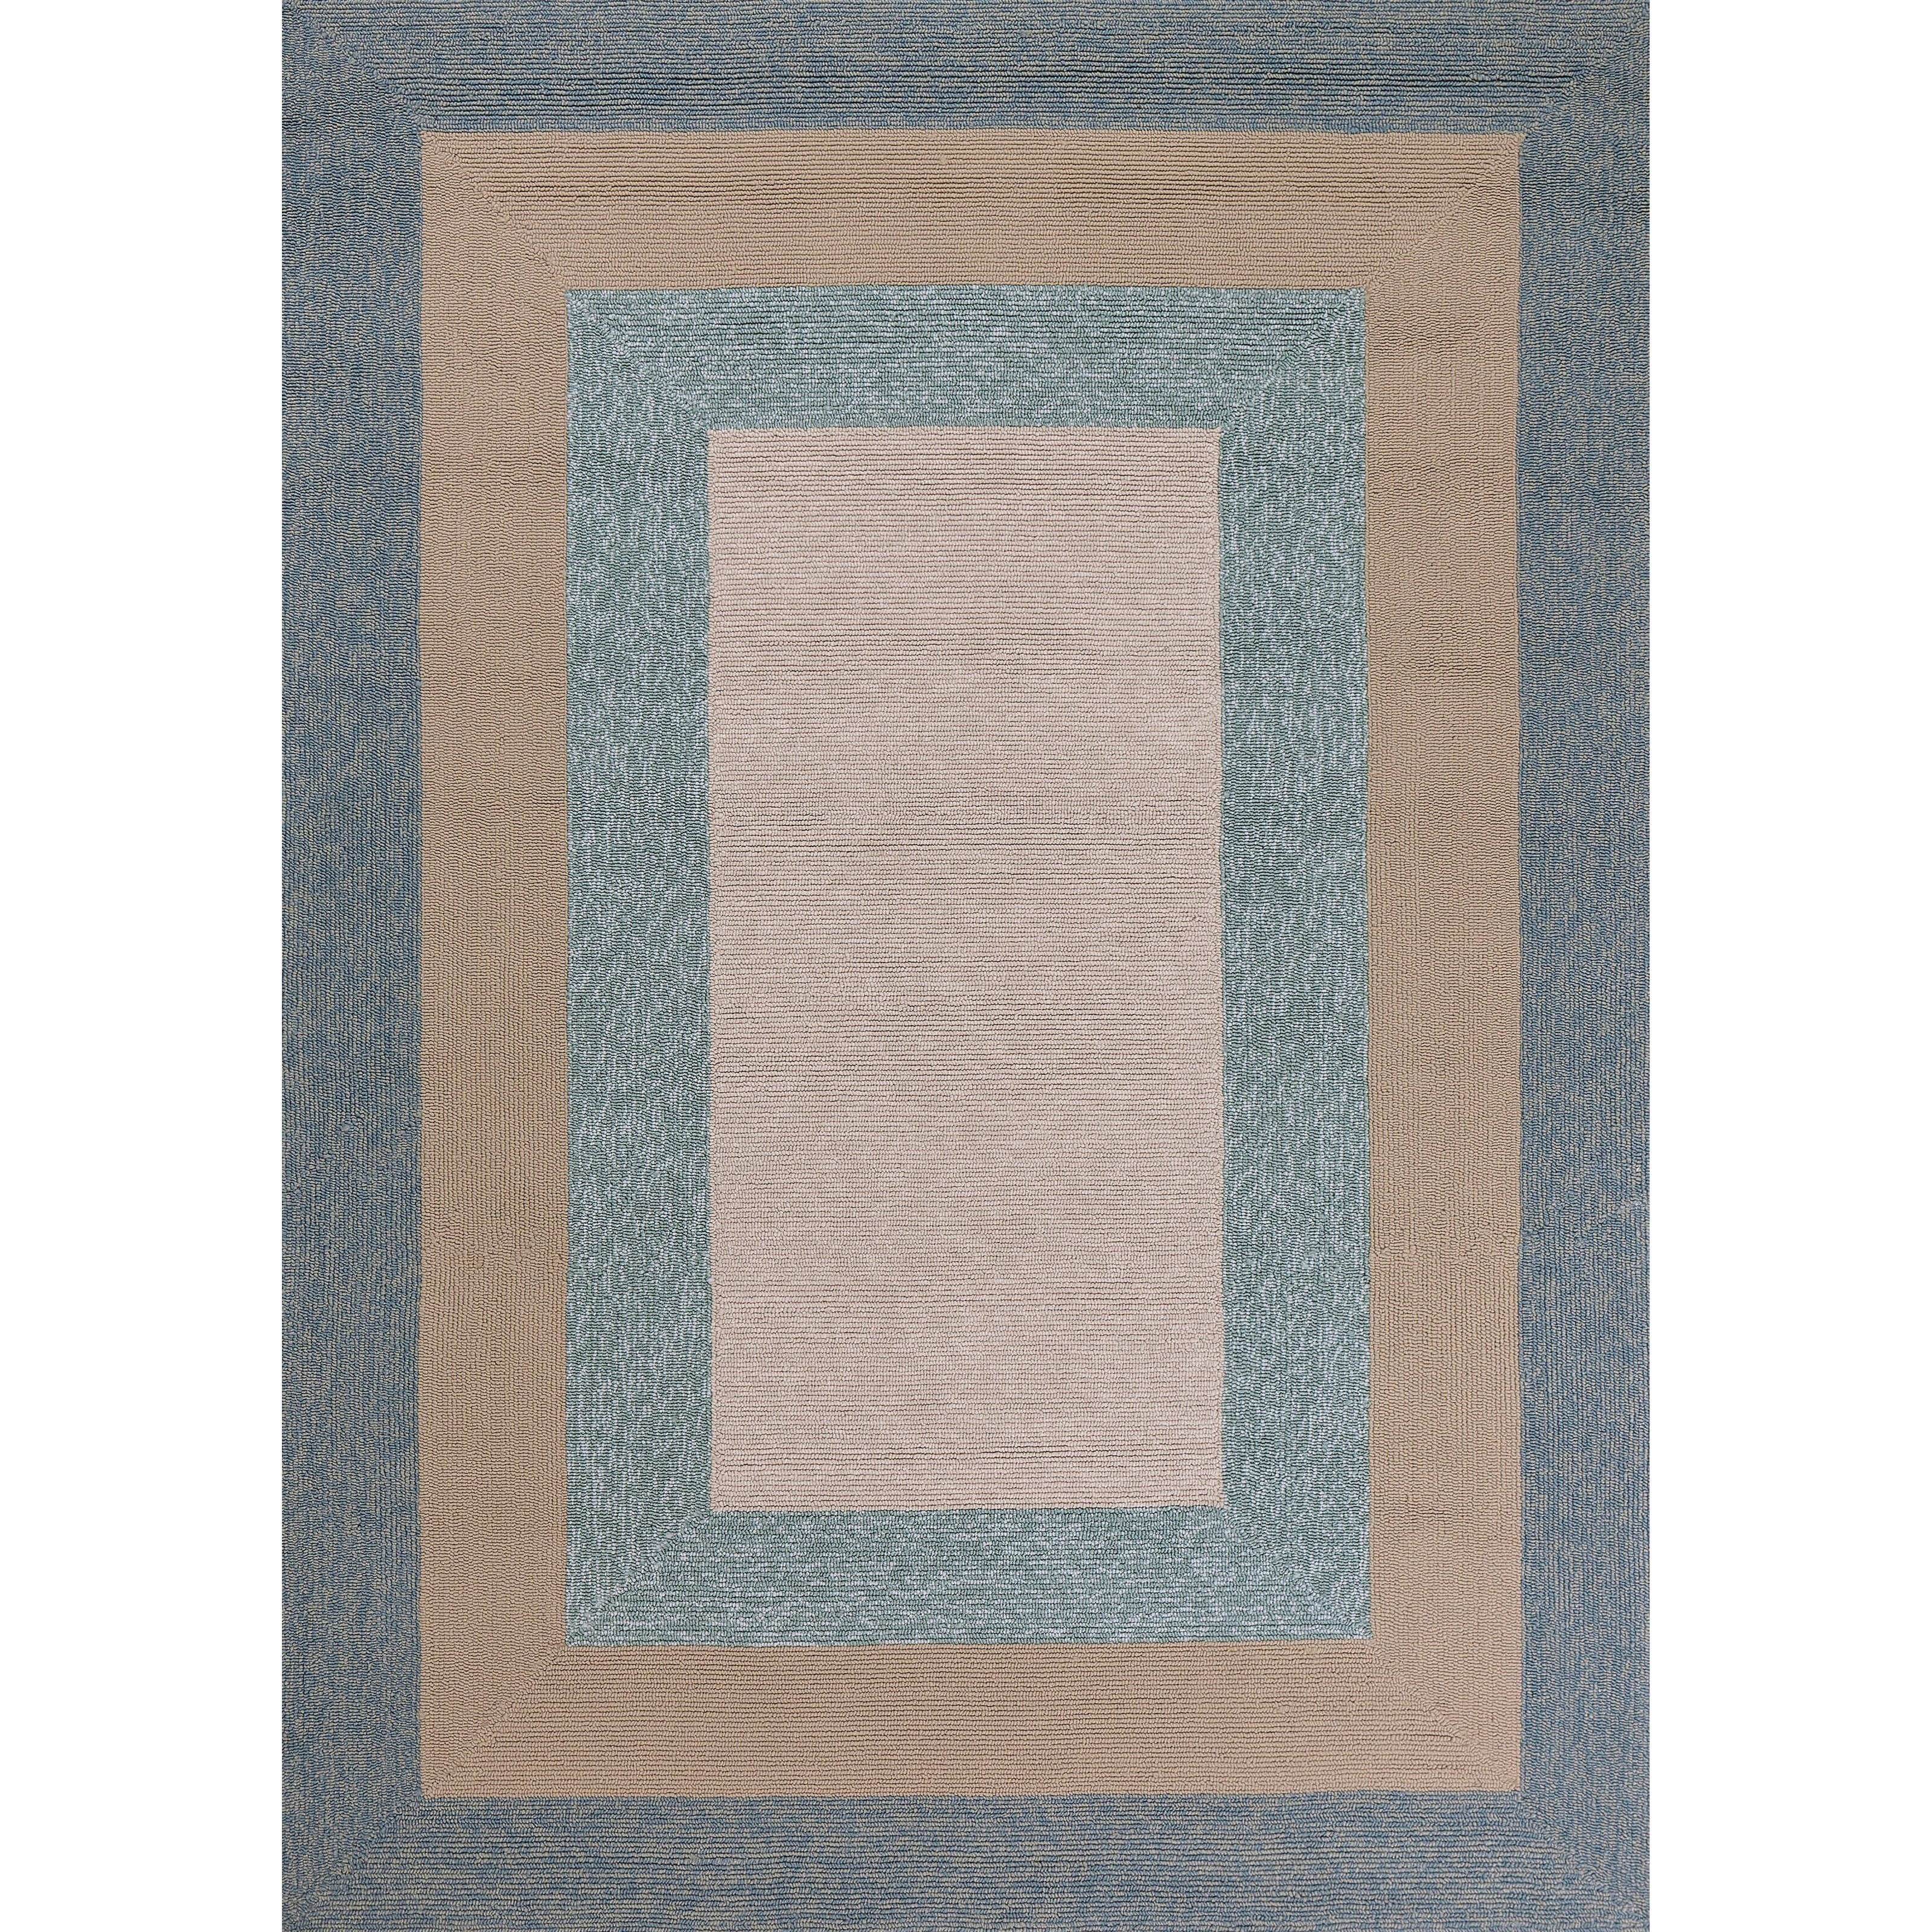 Libby Langdon Hamptons 11' X 8' Area Rug by Kas at Zak's Home